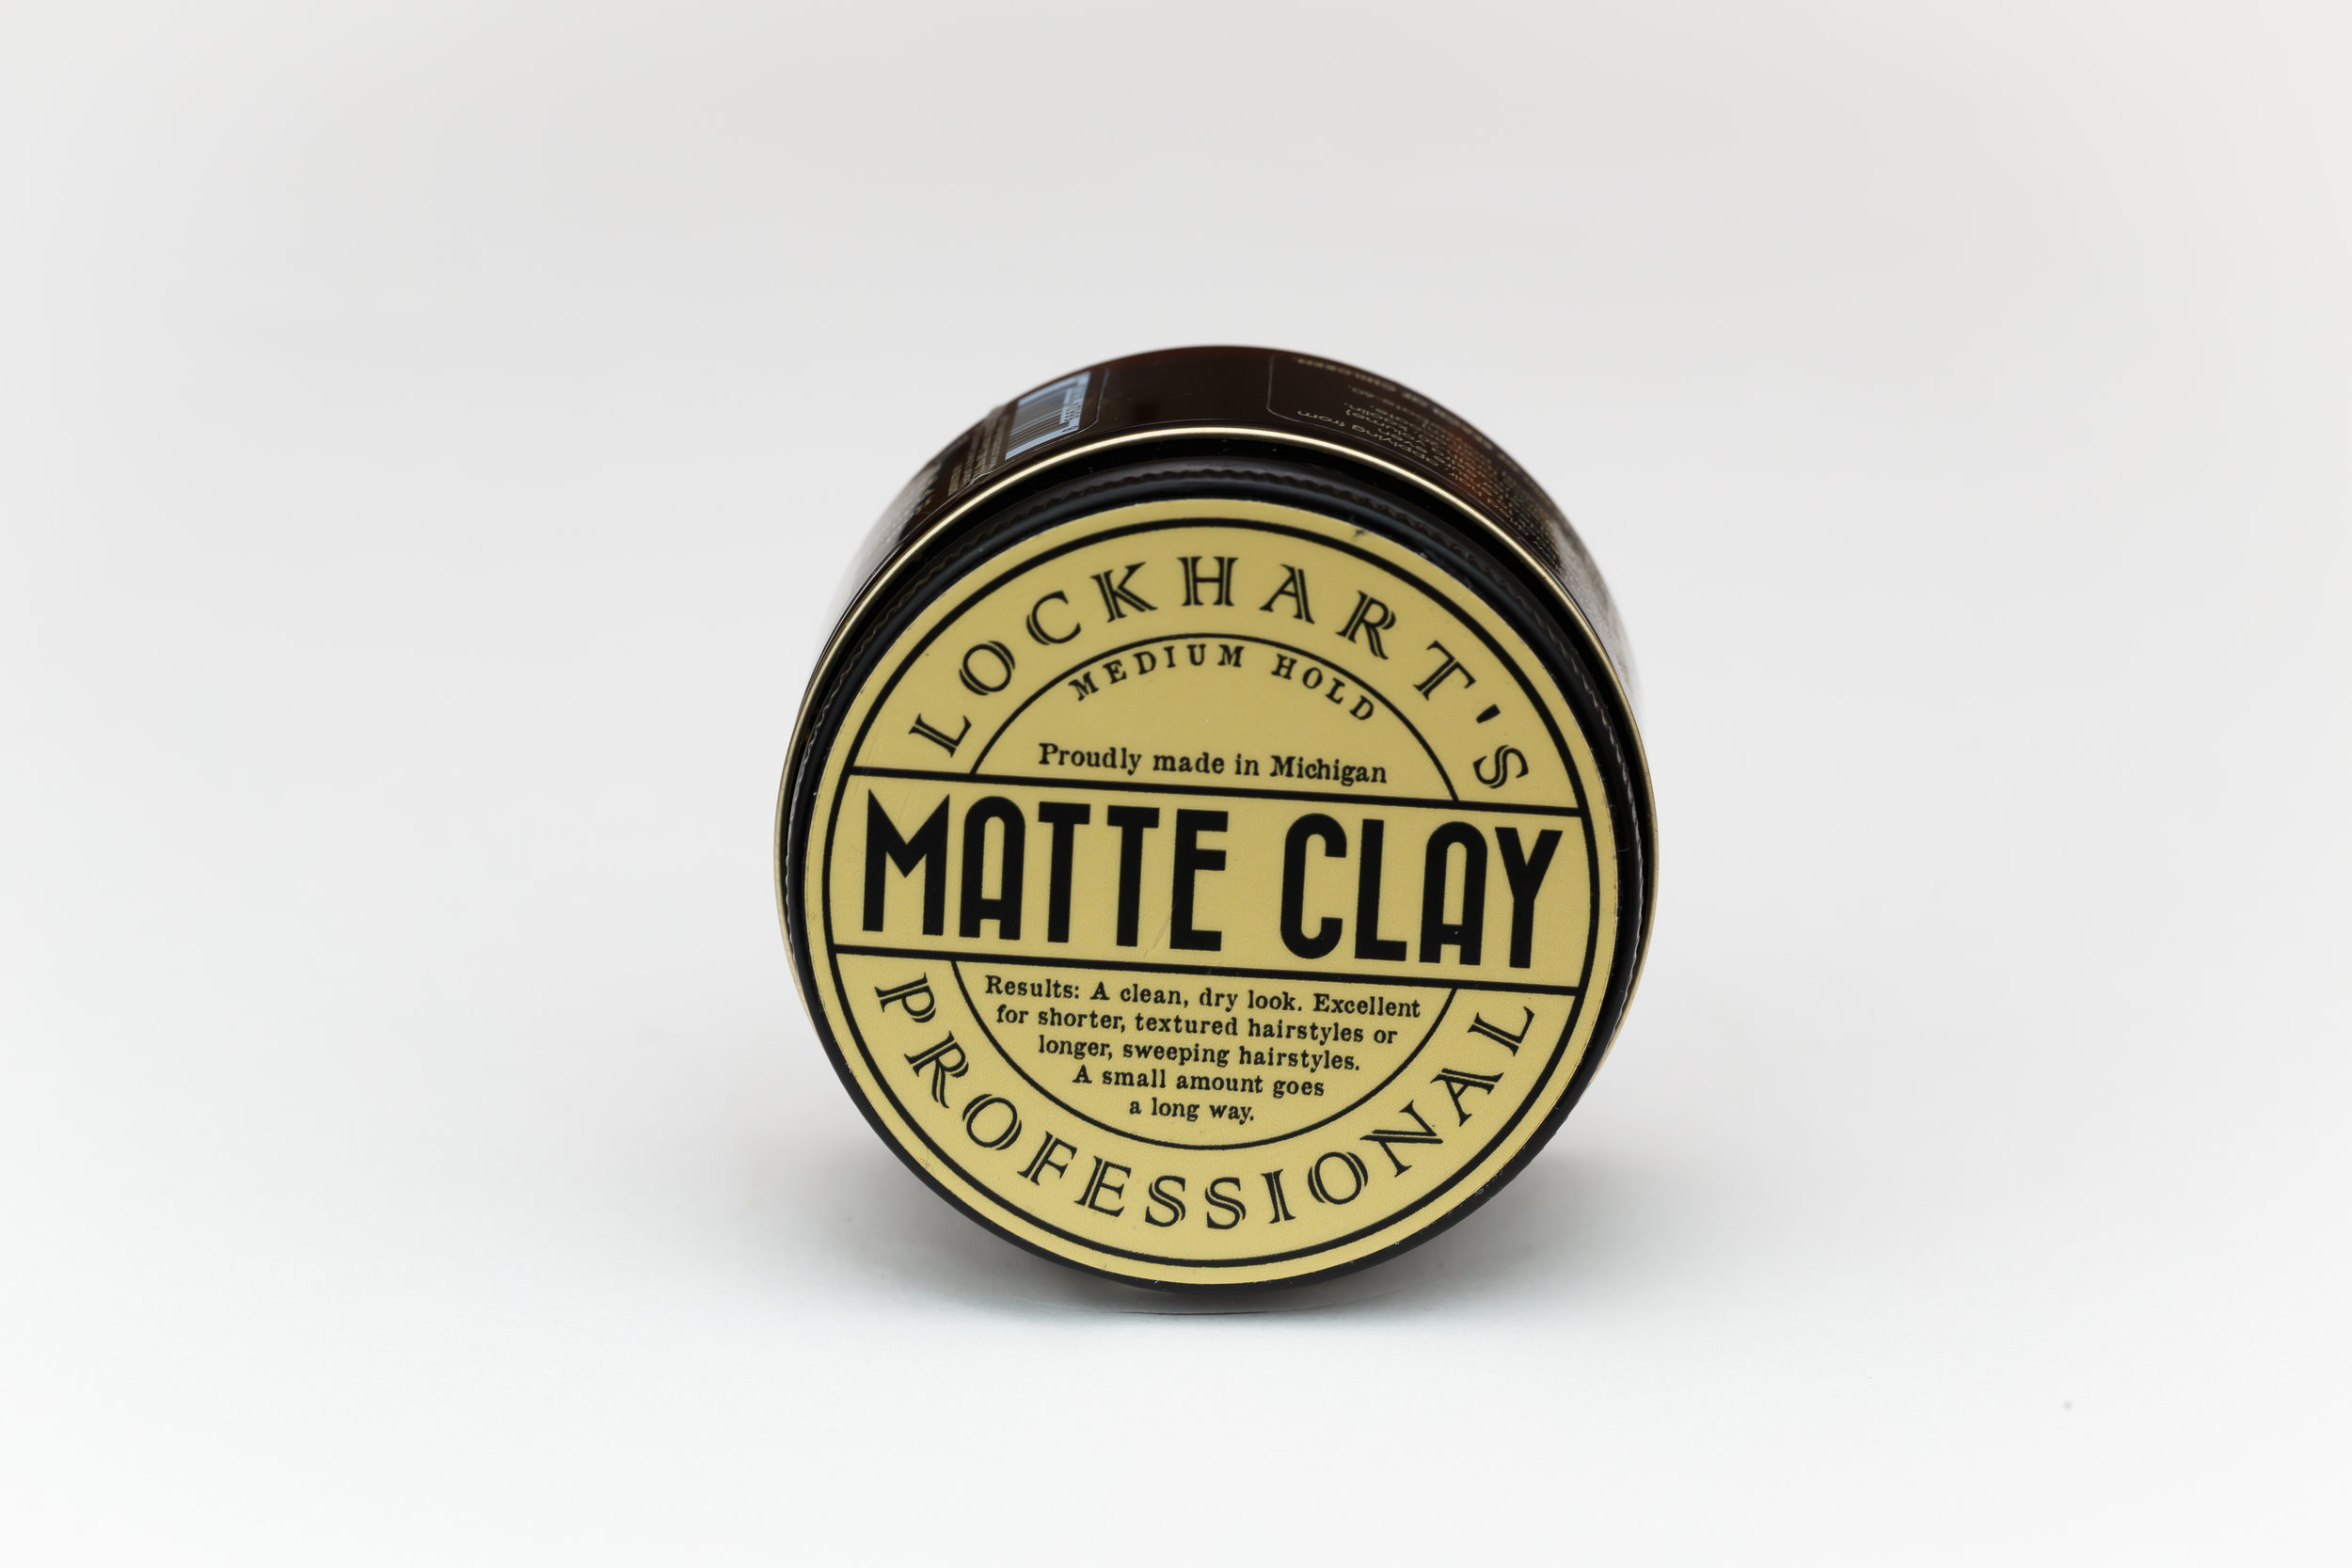 Lockhart's Matte Clay | Most Innovative Pomade 2016